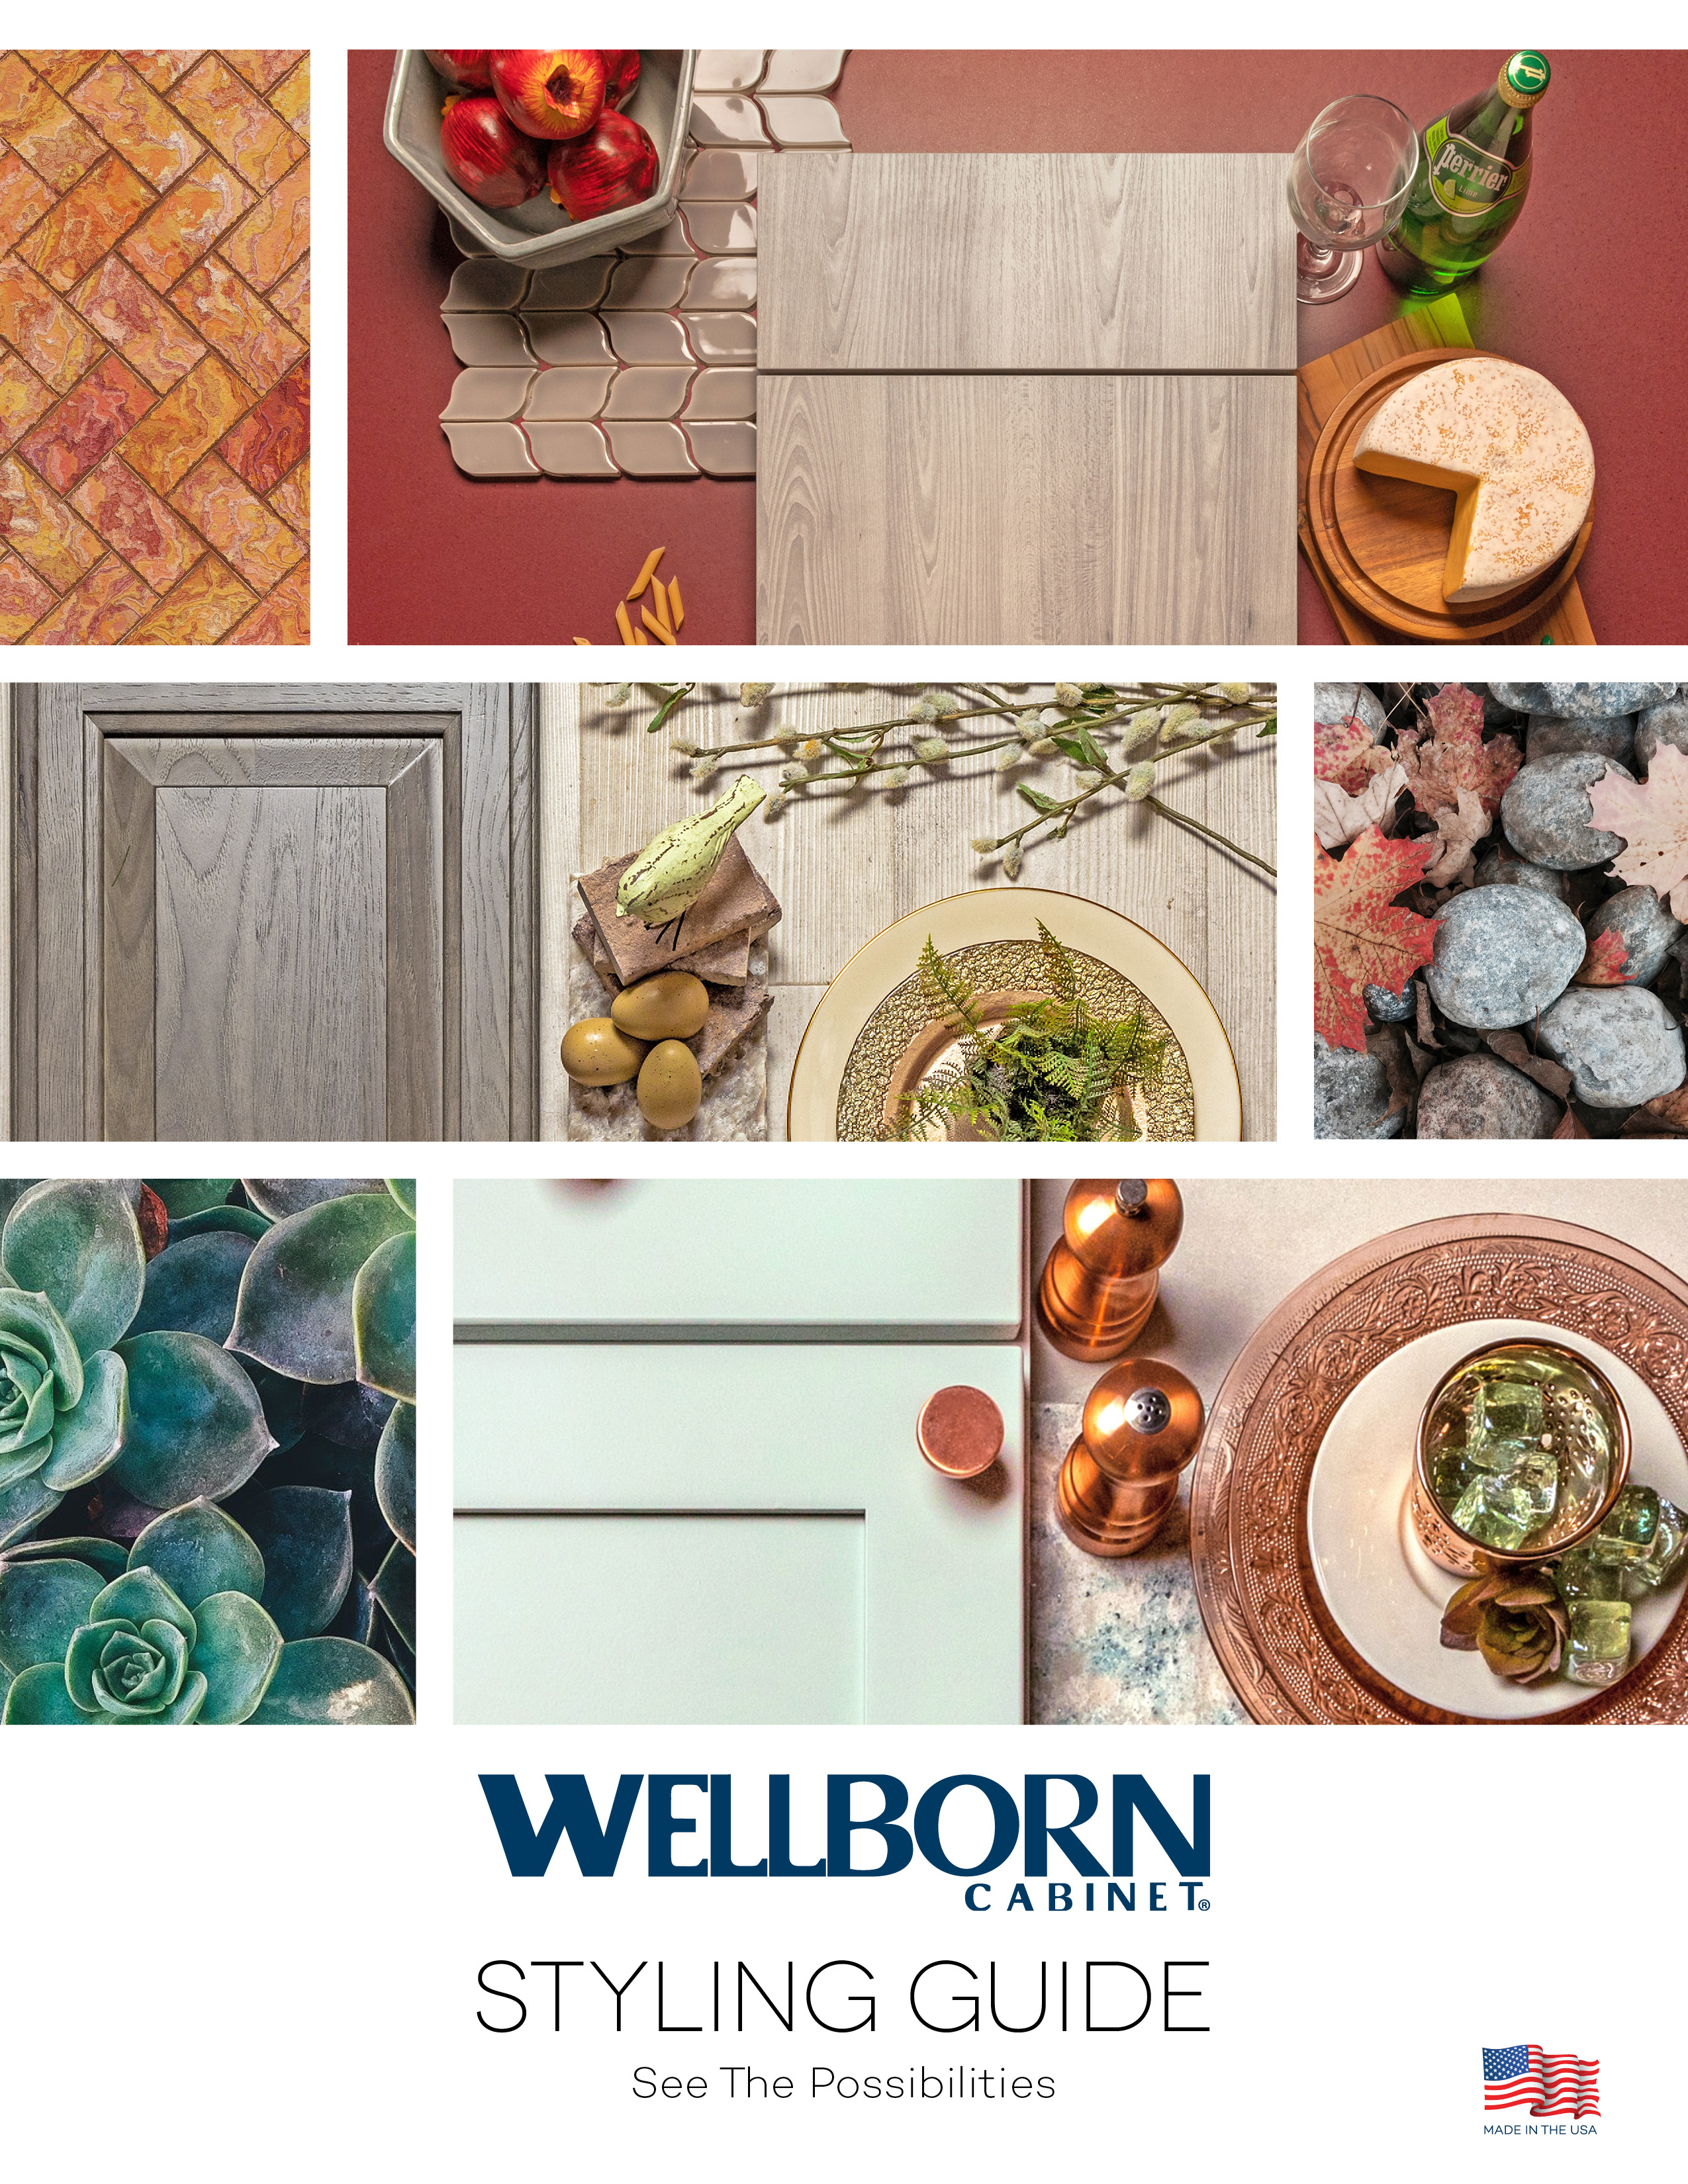 Wellborn Styling guide ?all in one? resource for a quick look at our overall product selections.